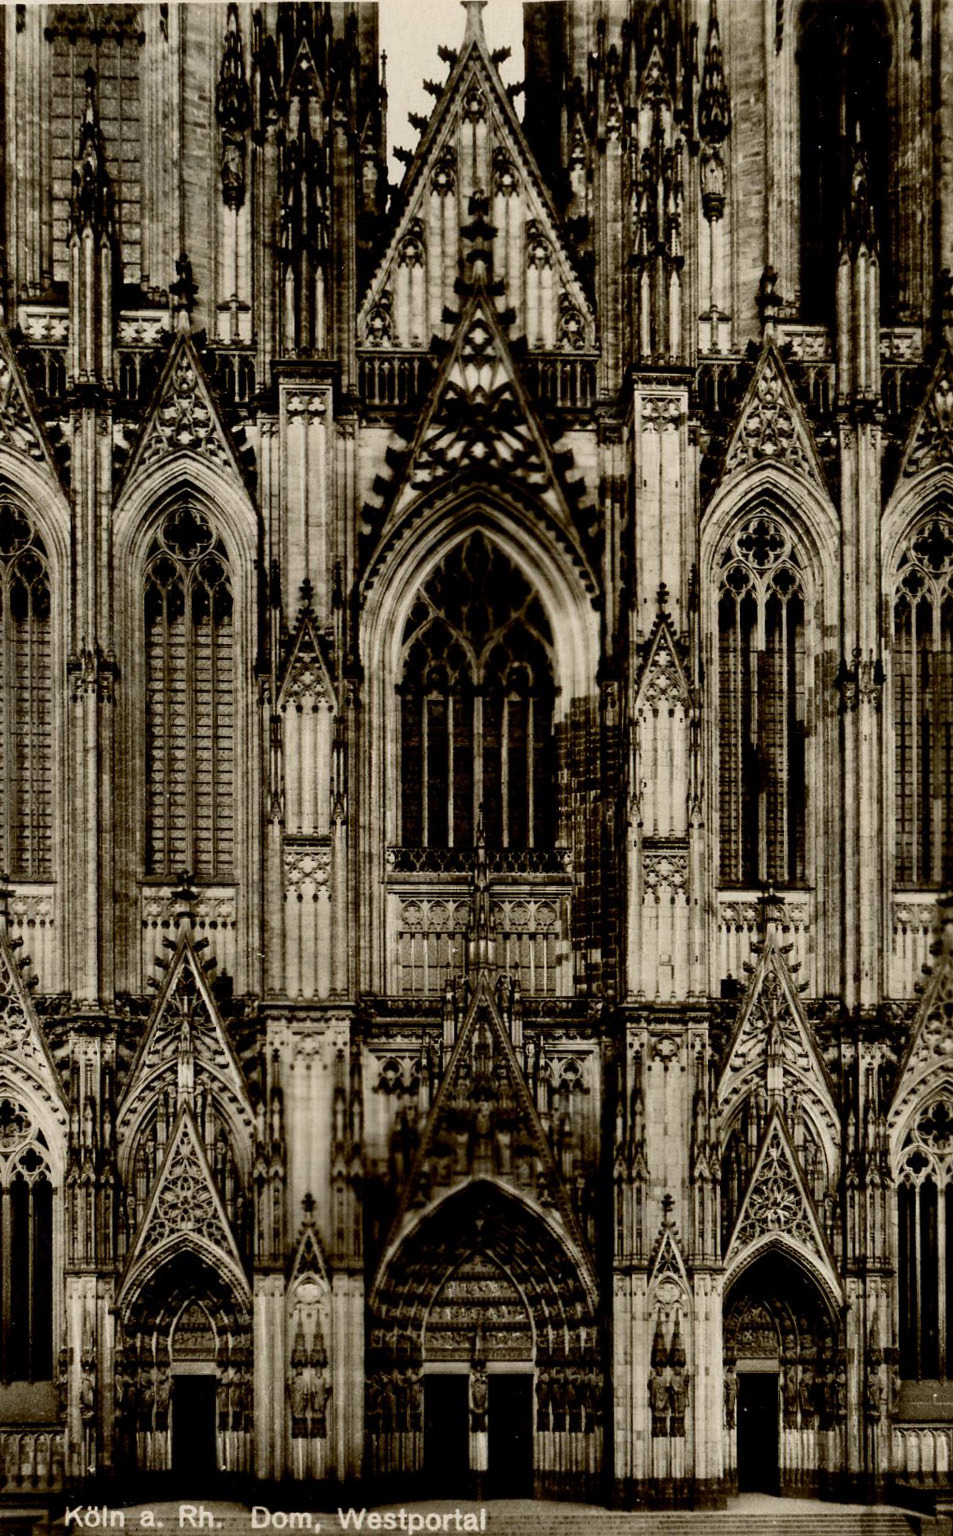 Cologne Cathedral, Germany (1248-1880)